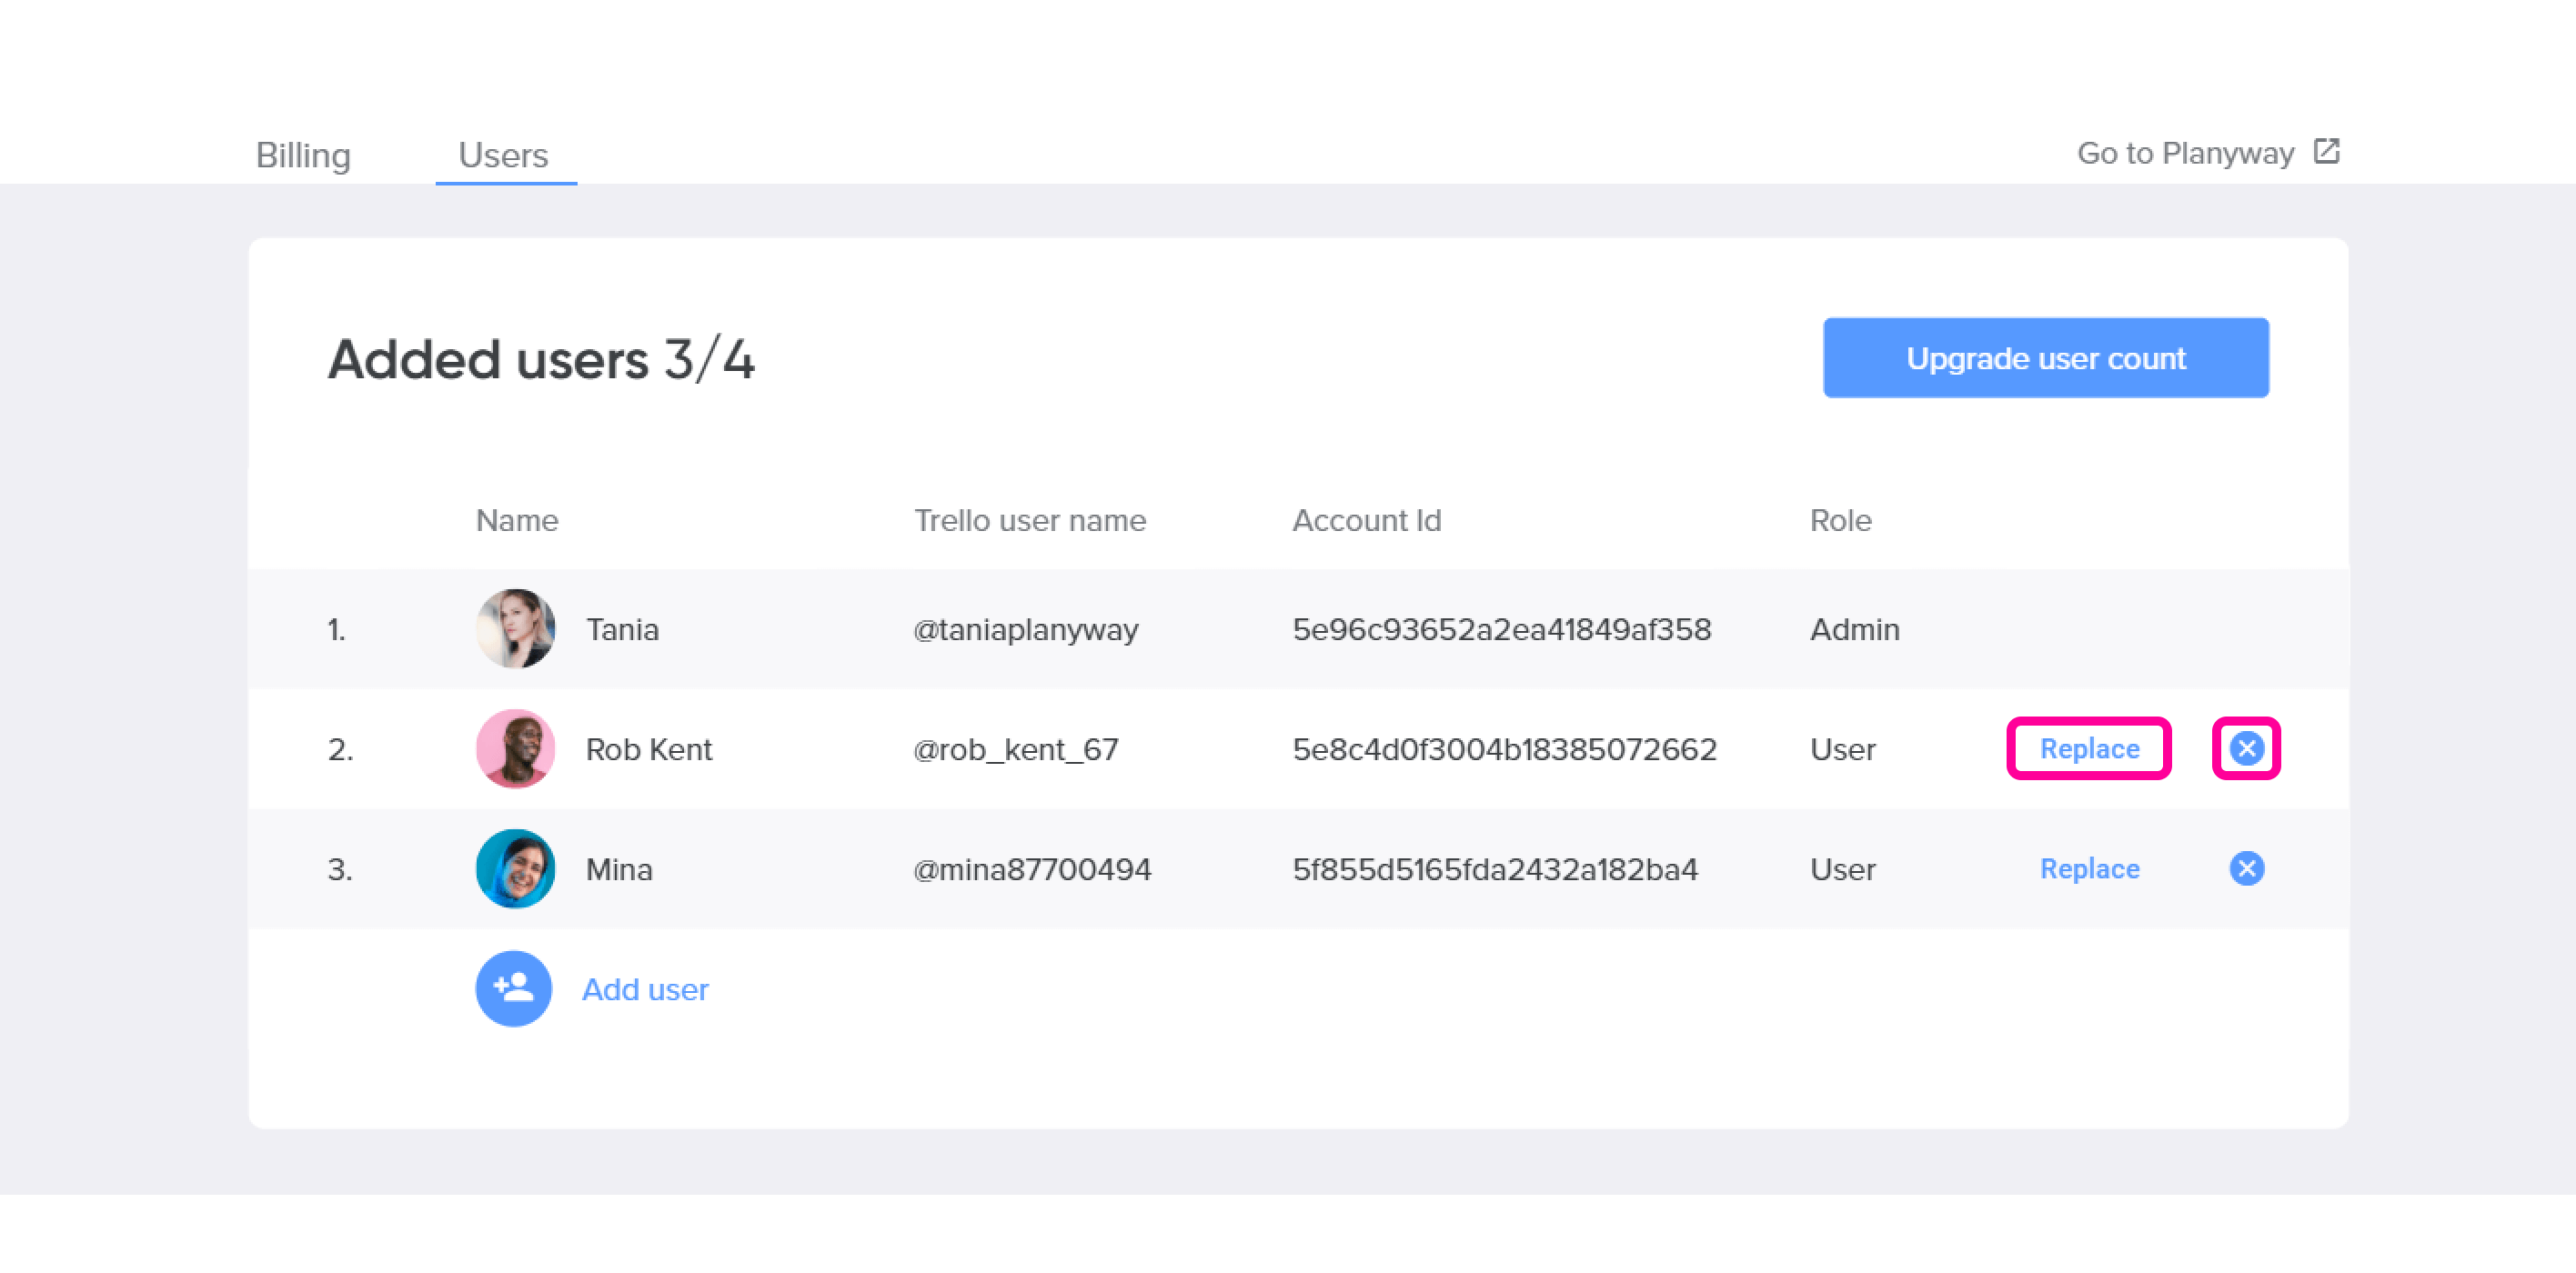 Account remove or replace user